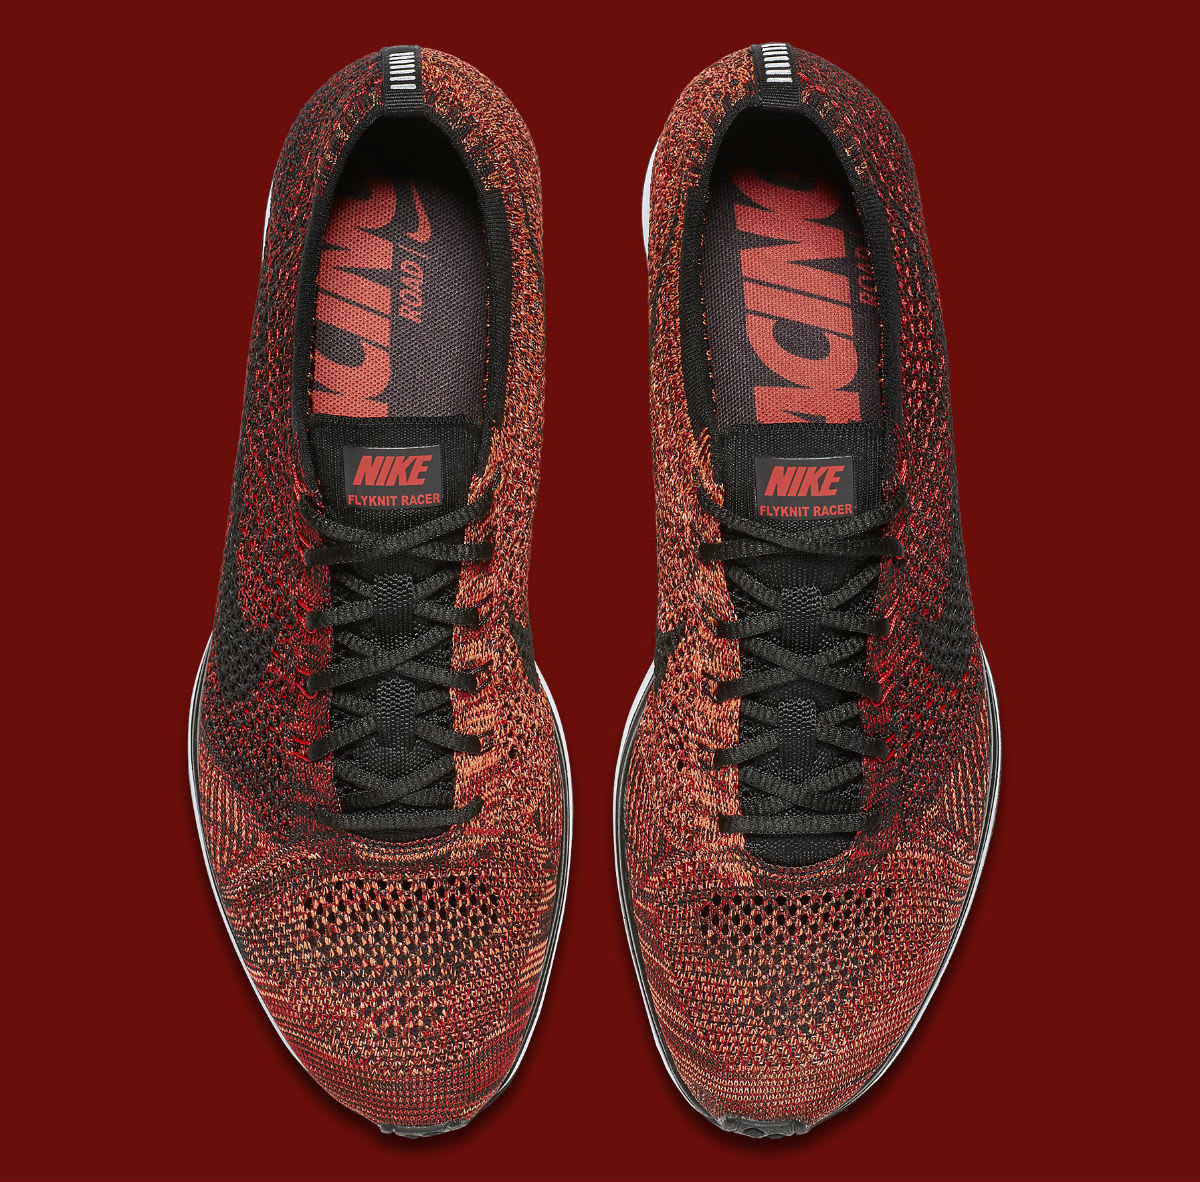 3d8eb90ceb299 ... size 13 new 526628 602 7152e 1de8a  get nike flyknit racer university red  black mango release date top 526628 608 6b5fa d9bcf